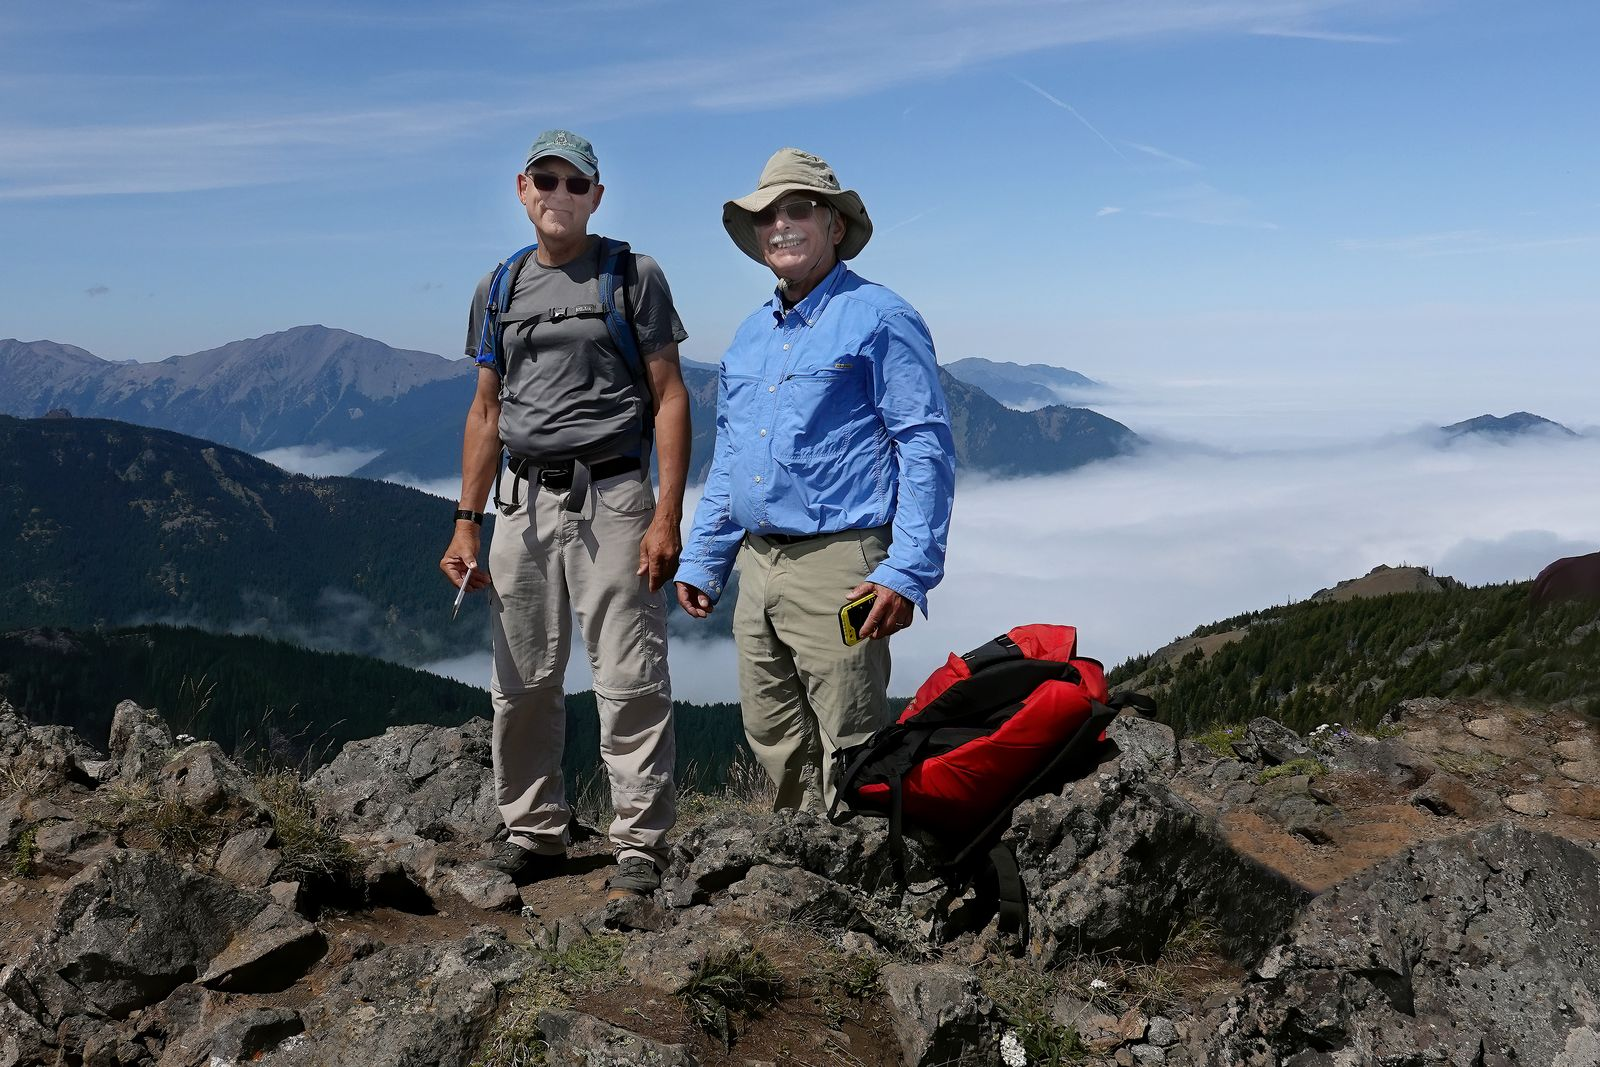 John and David at the top of Mount Townsend